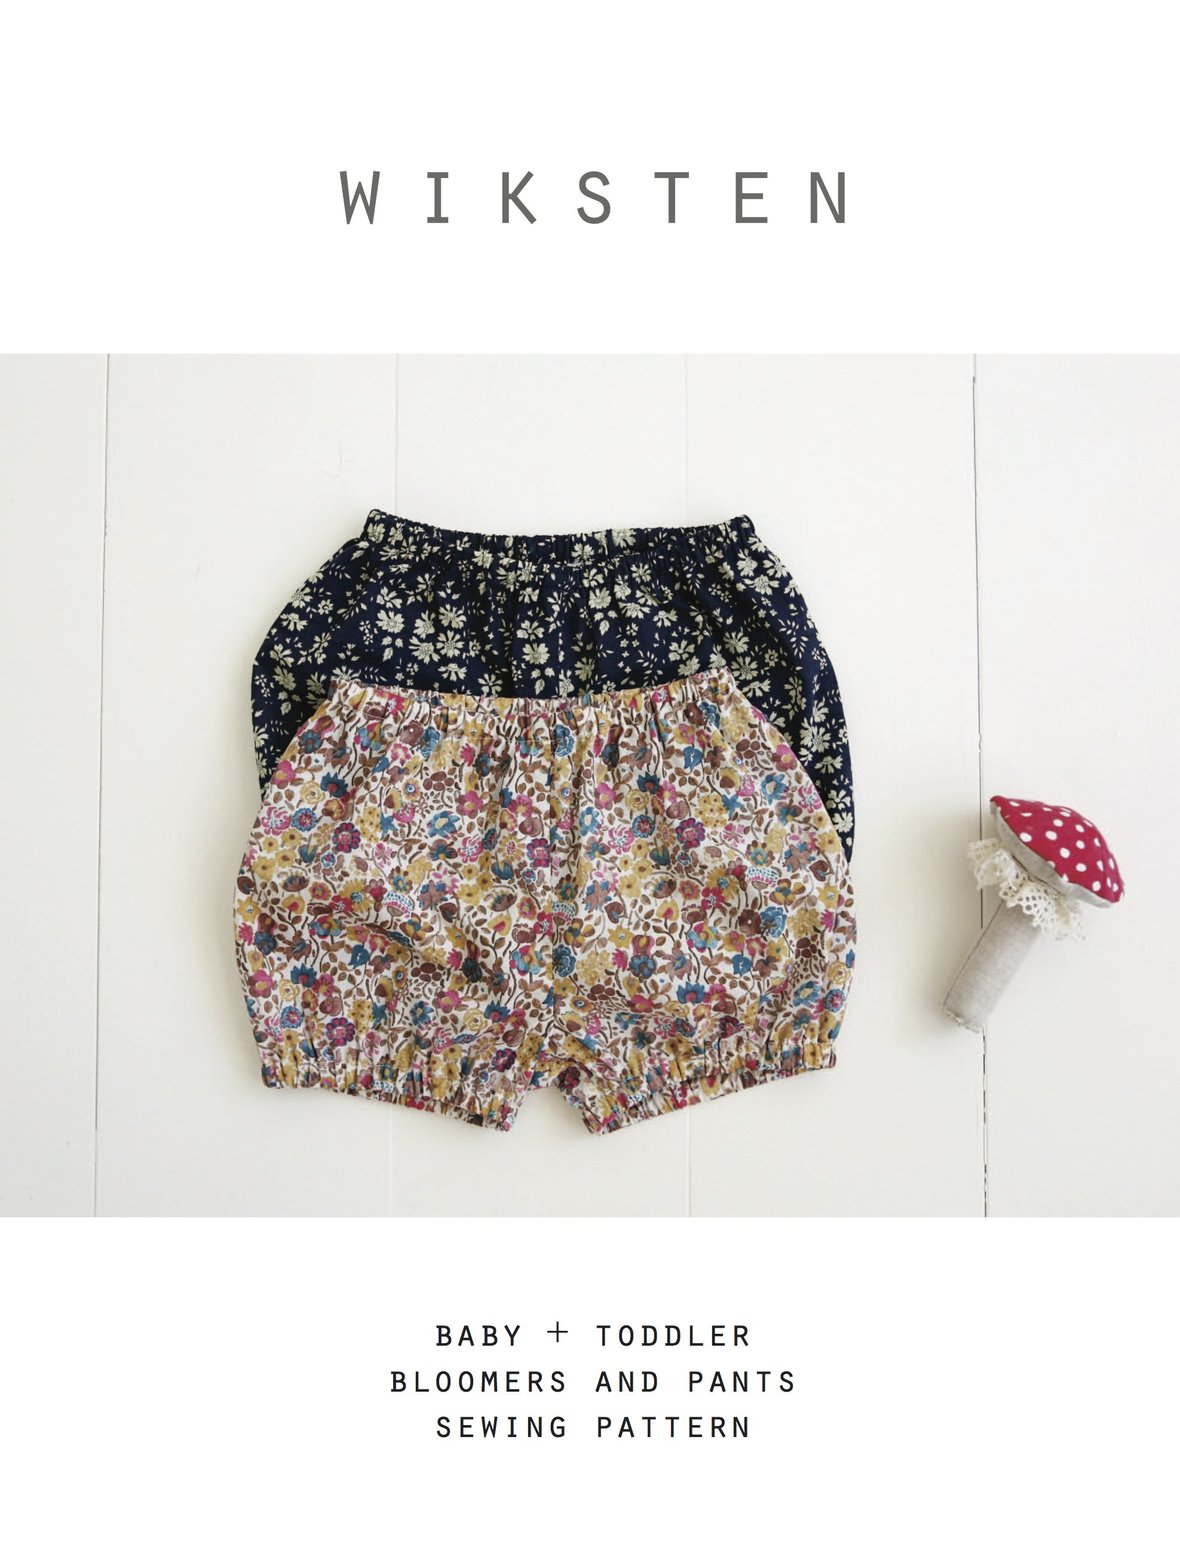 wiksten bloomers and pants sewing pattern